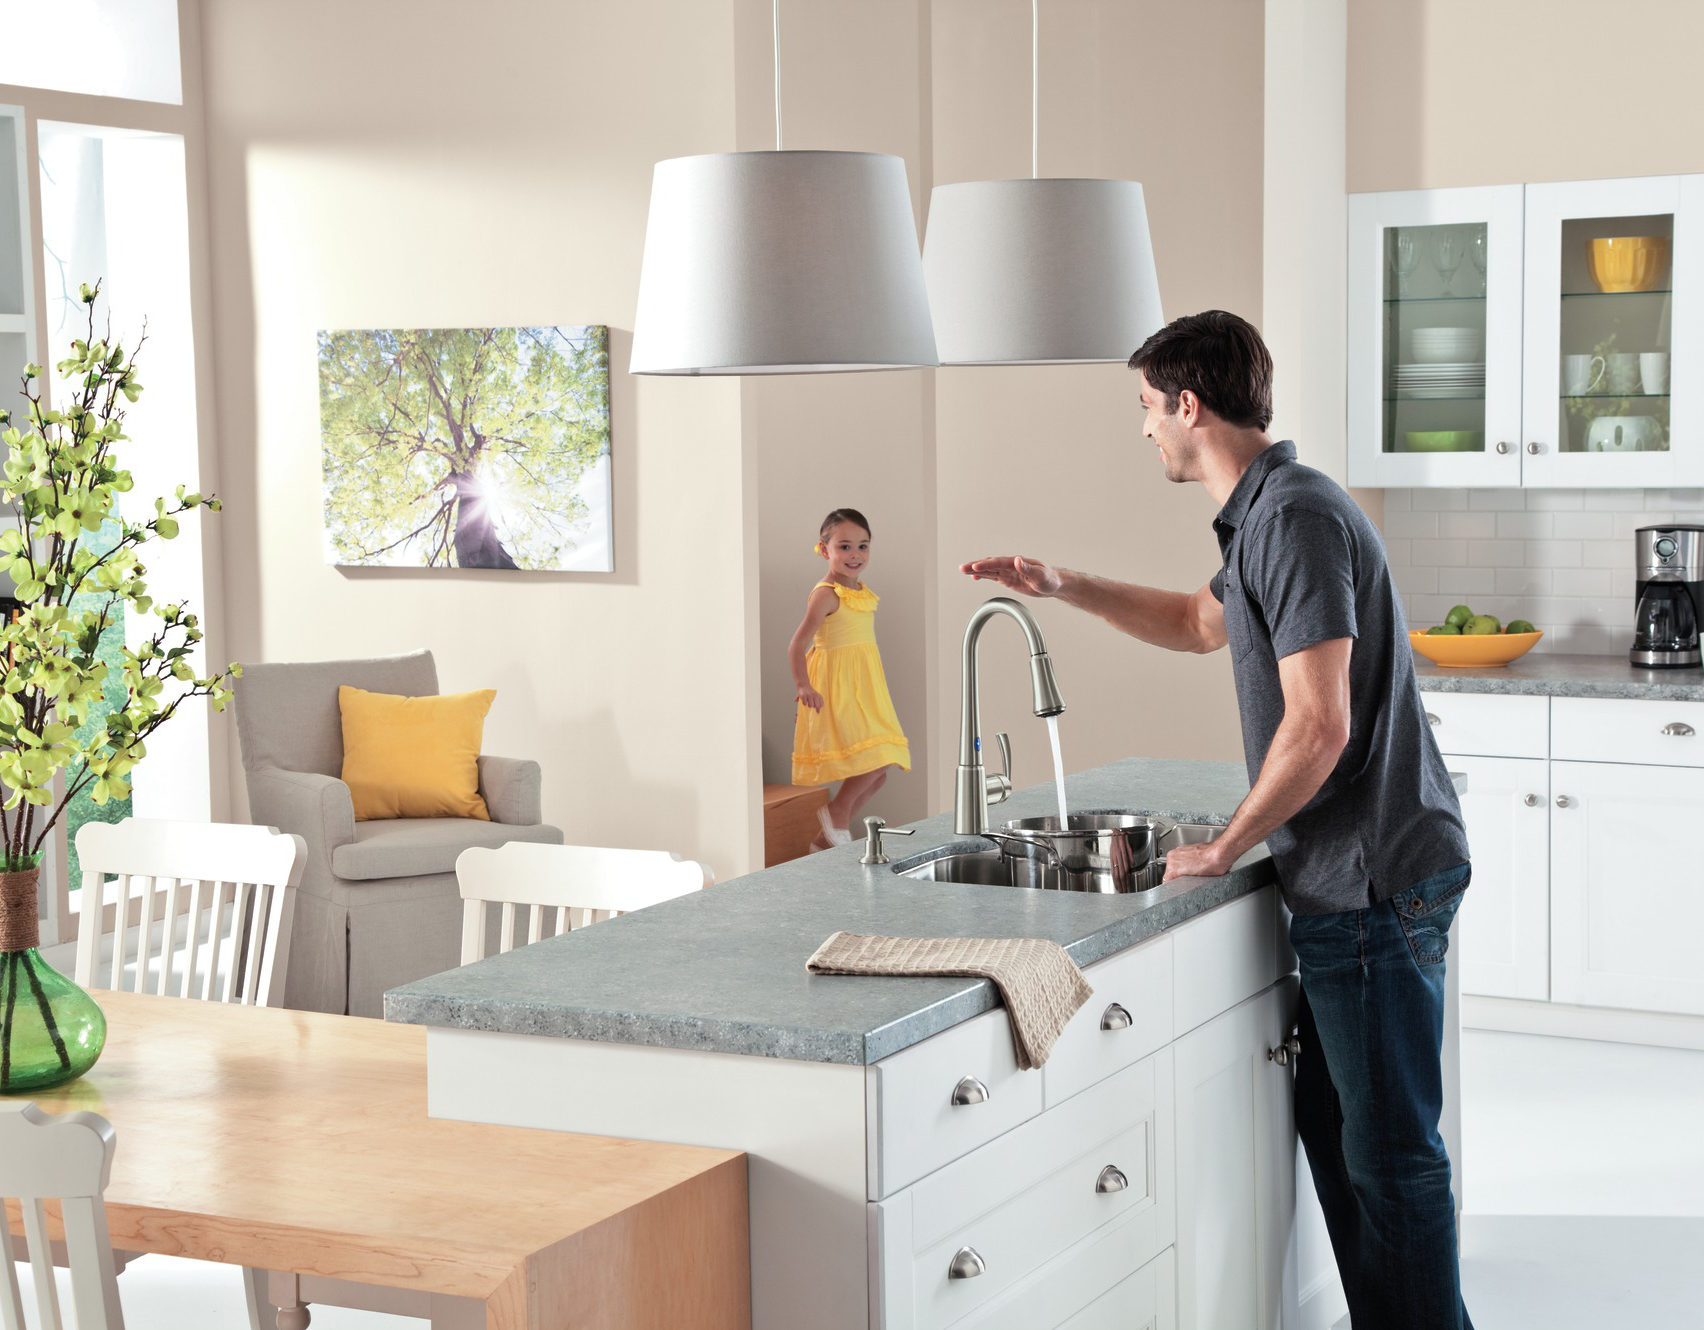 Trend Delaney motionsense kitchen sensor faucet Moen via Atticmag